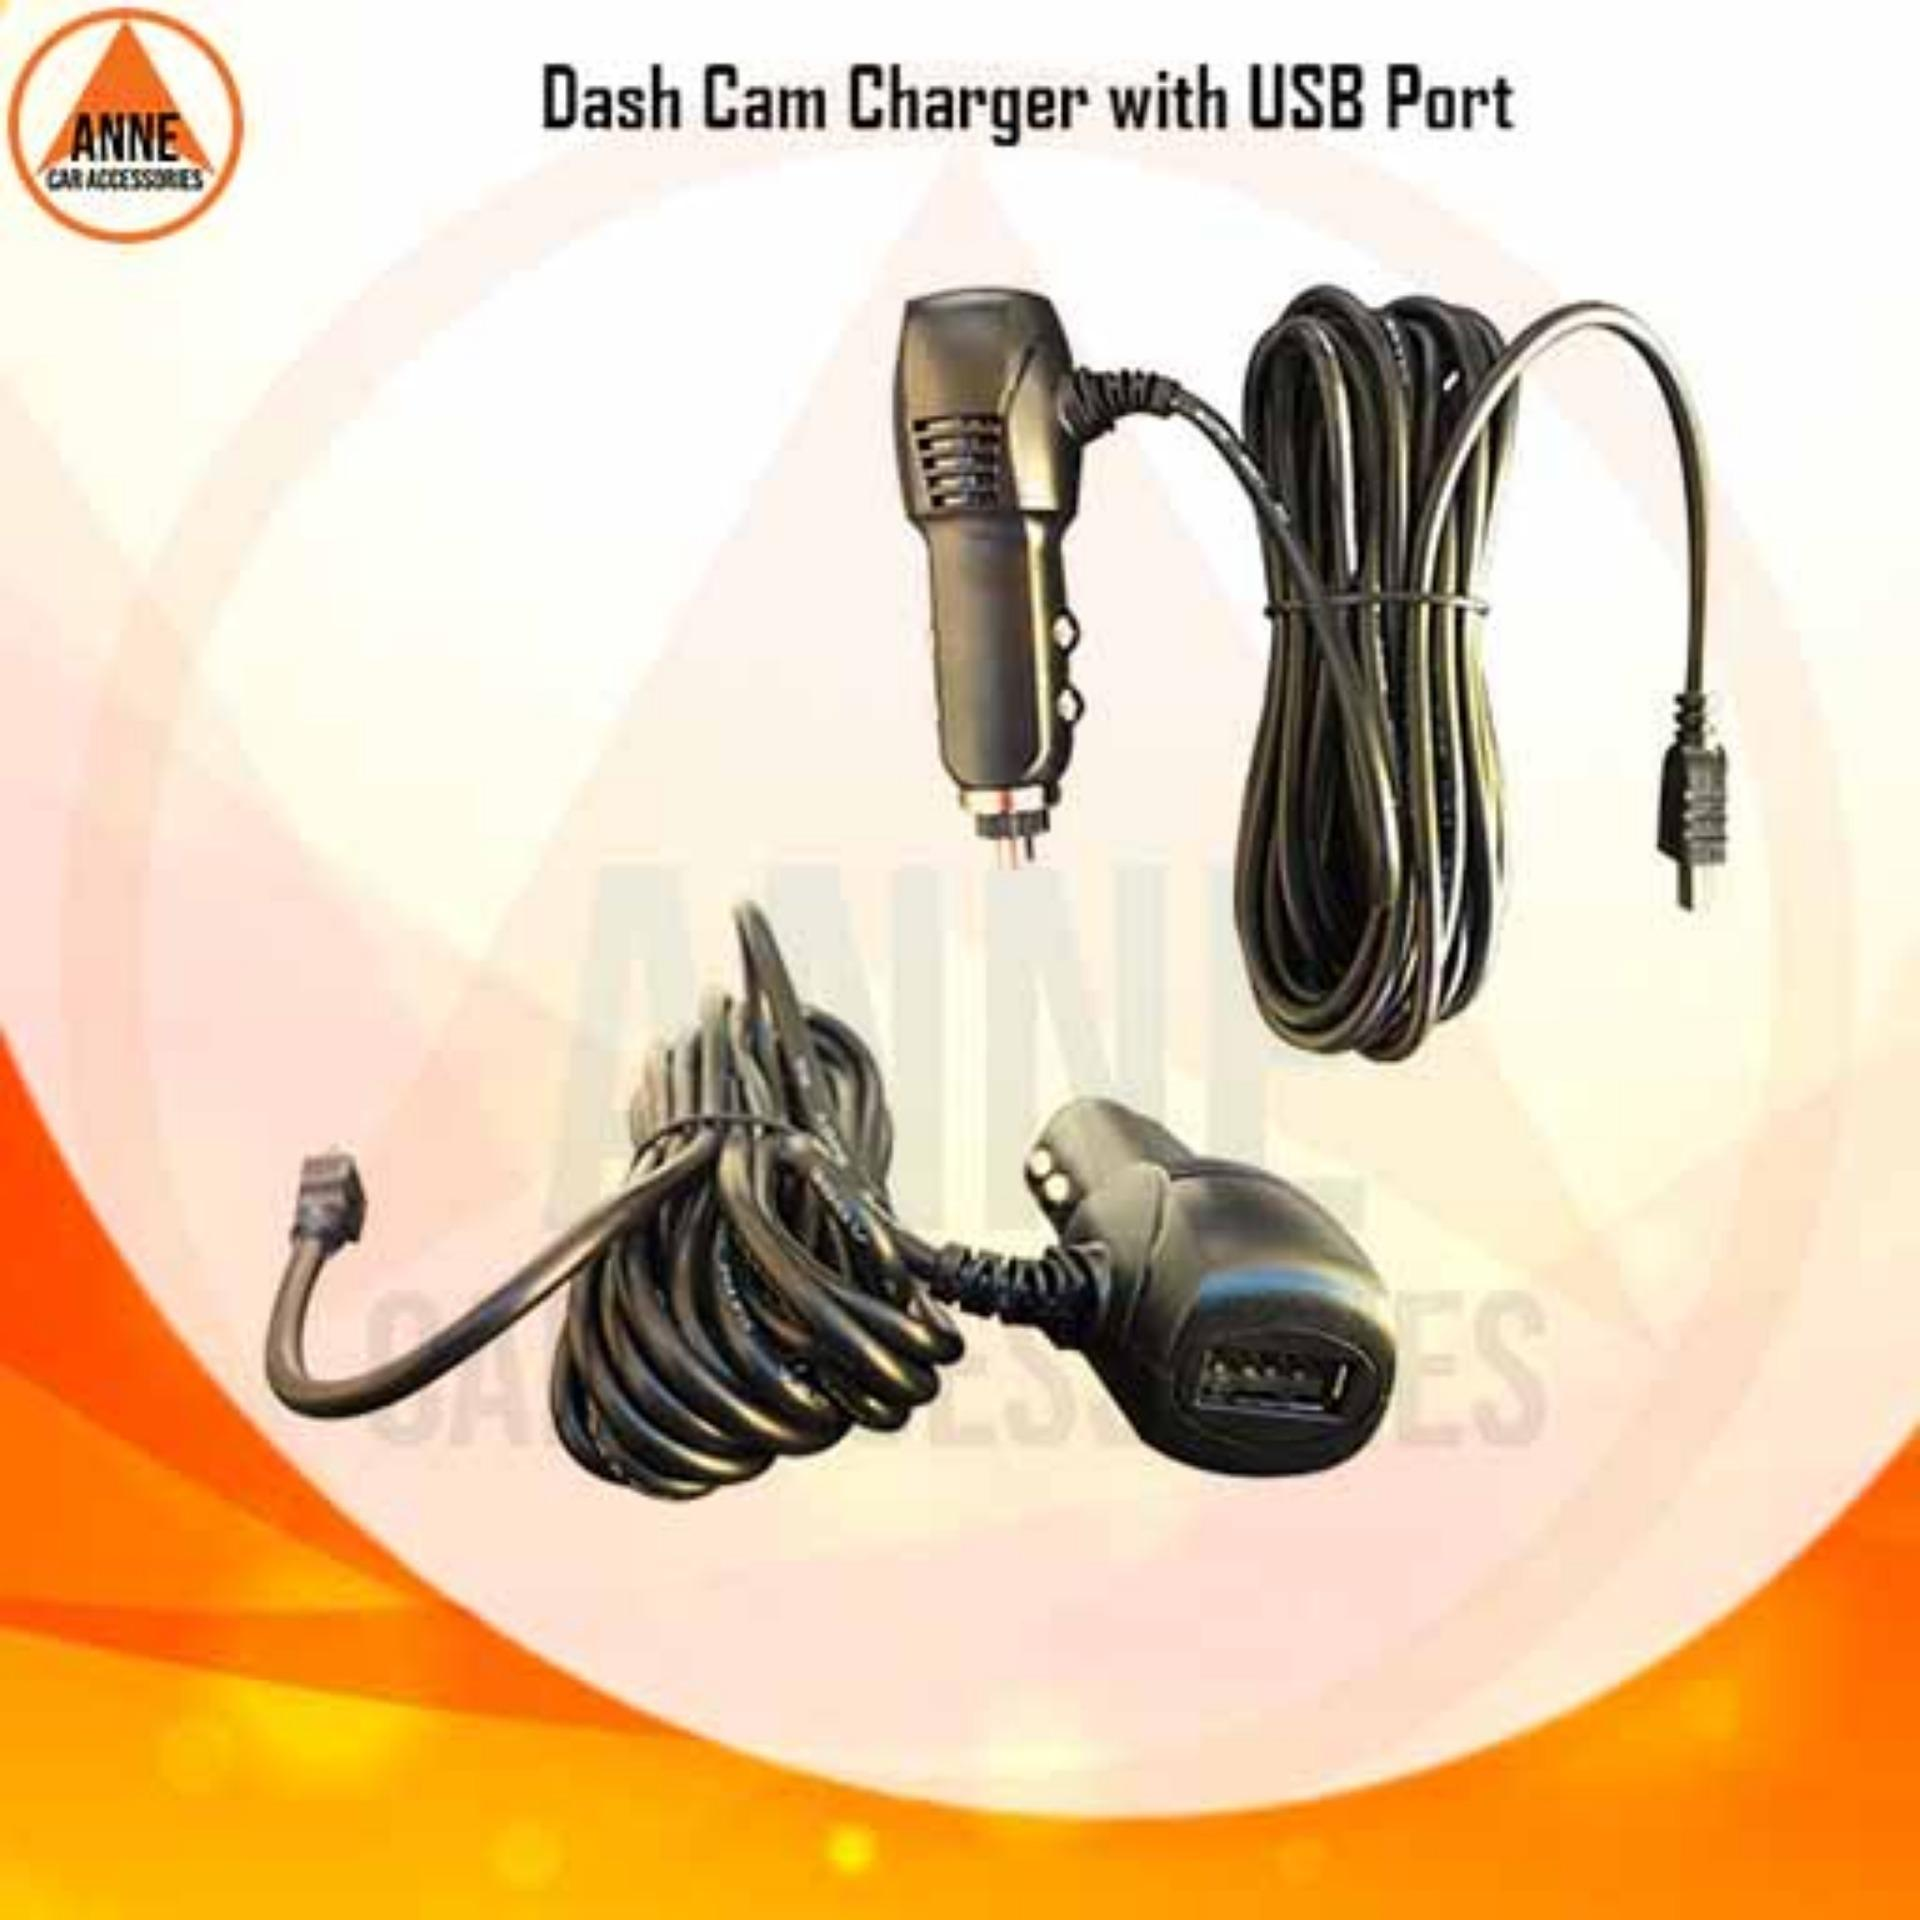 Car Charger Usb For Sale Phone Prices Brands Specs Download Image Ac Dc Converter 12v To 110v Circuit Pc Android Iphone Cigarette Lighter Adapter With Port And Apple Tablet